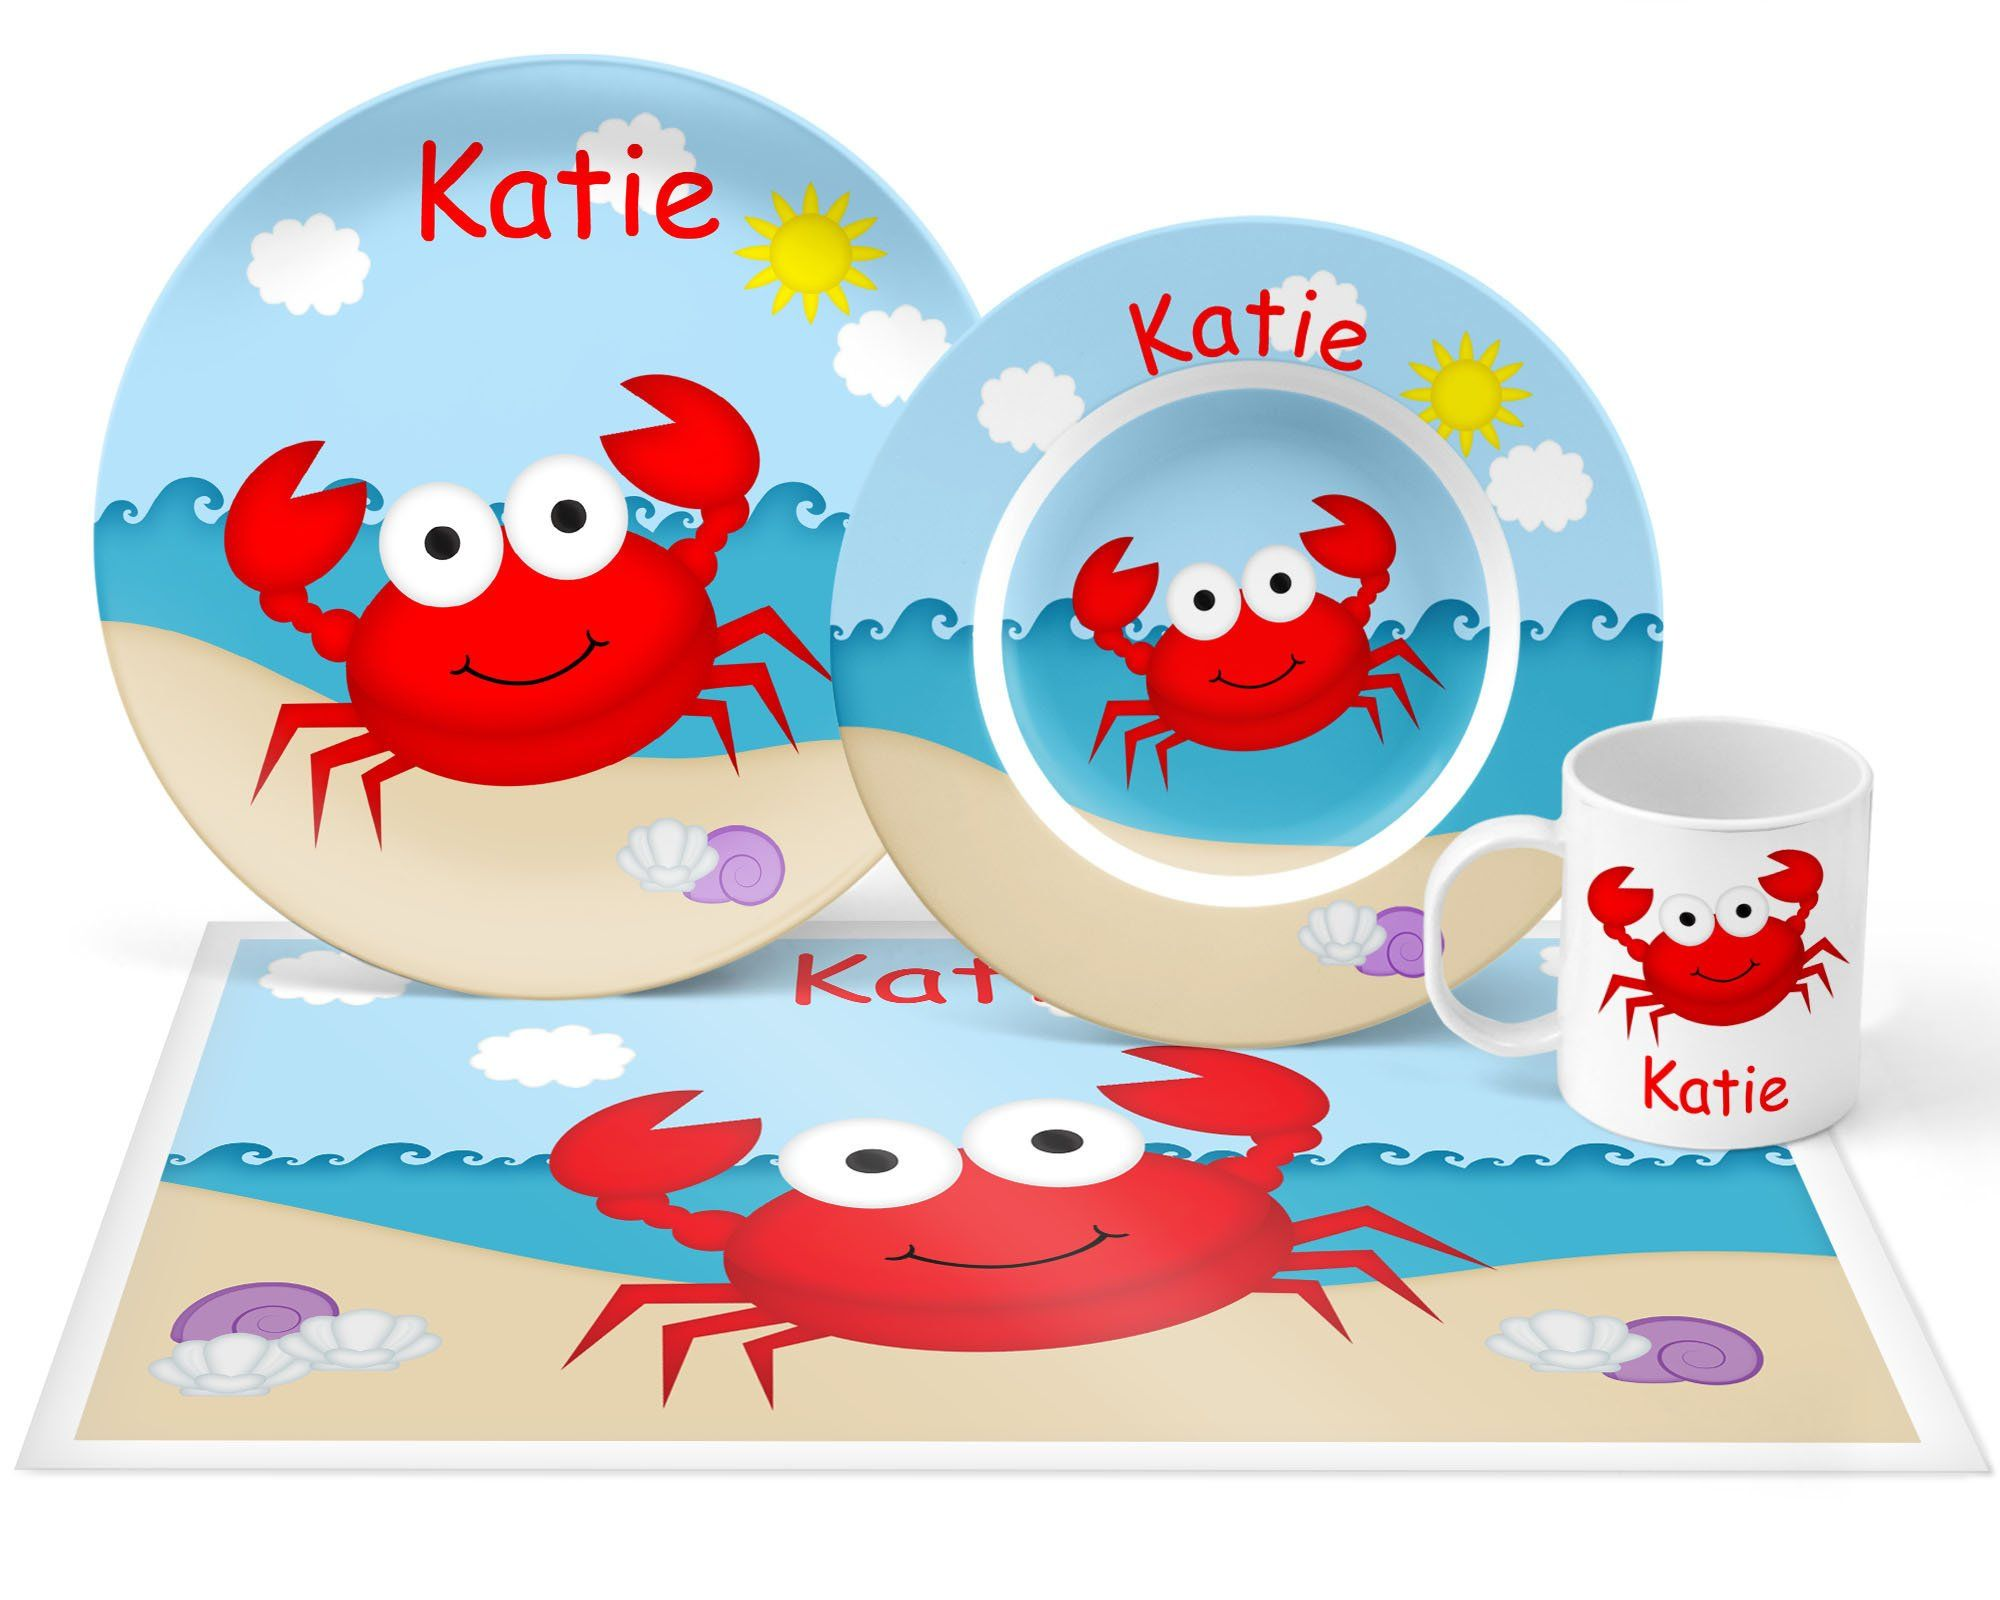 Crab Plate Set Personalized Kids Plate Bowl Mug Placemat Crab Plate Set Kids Plastic Tableware Microwave Safe With Images Kids Plates Plate Sets Personalized Plastic Plates